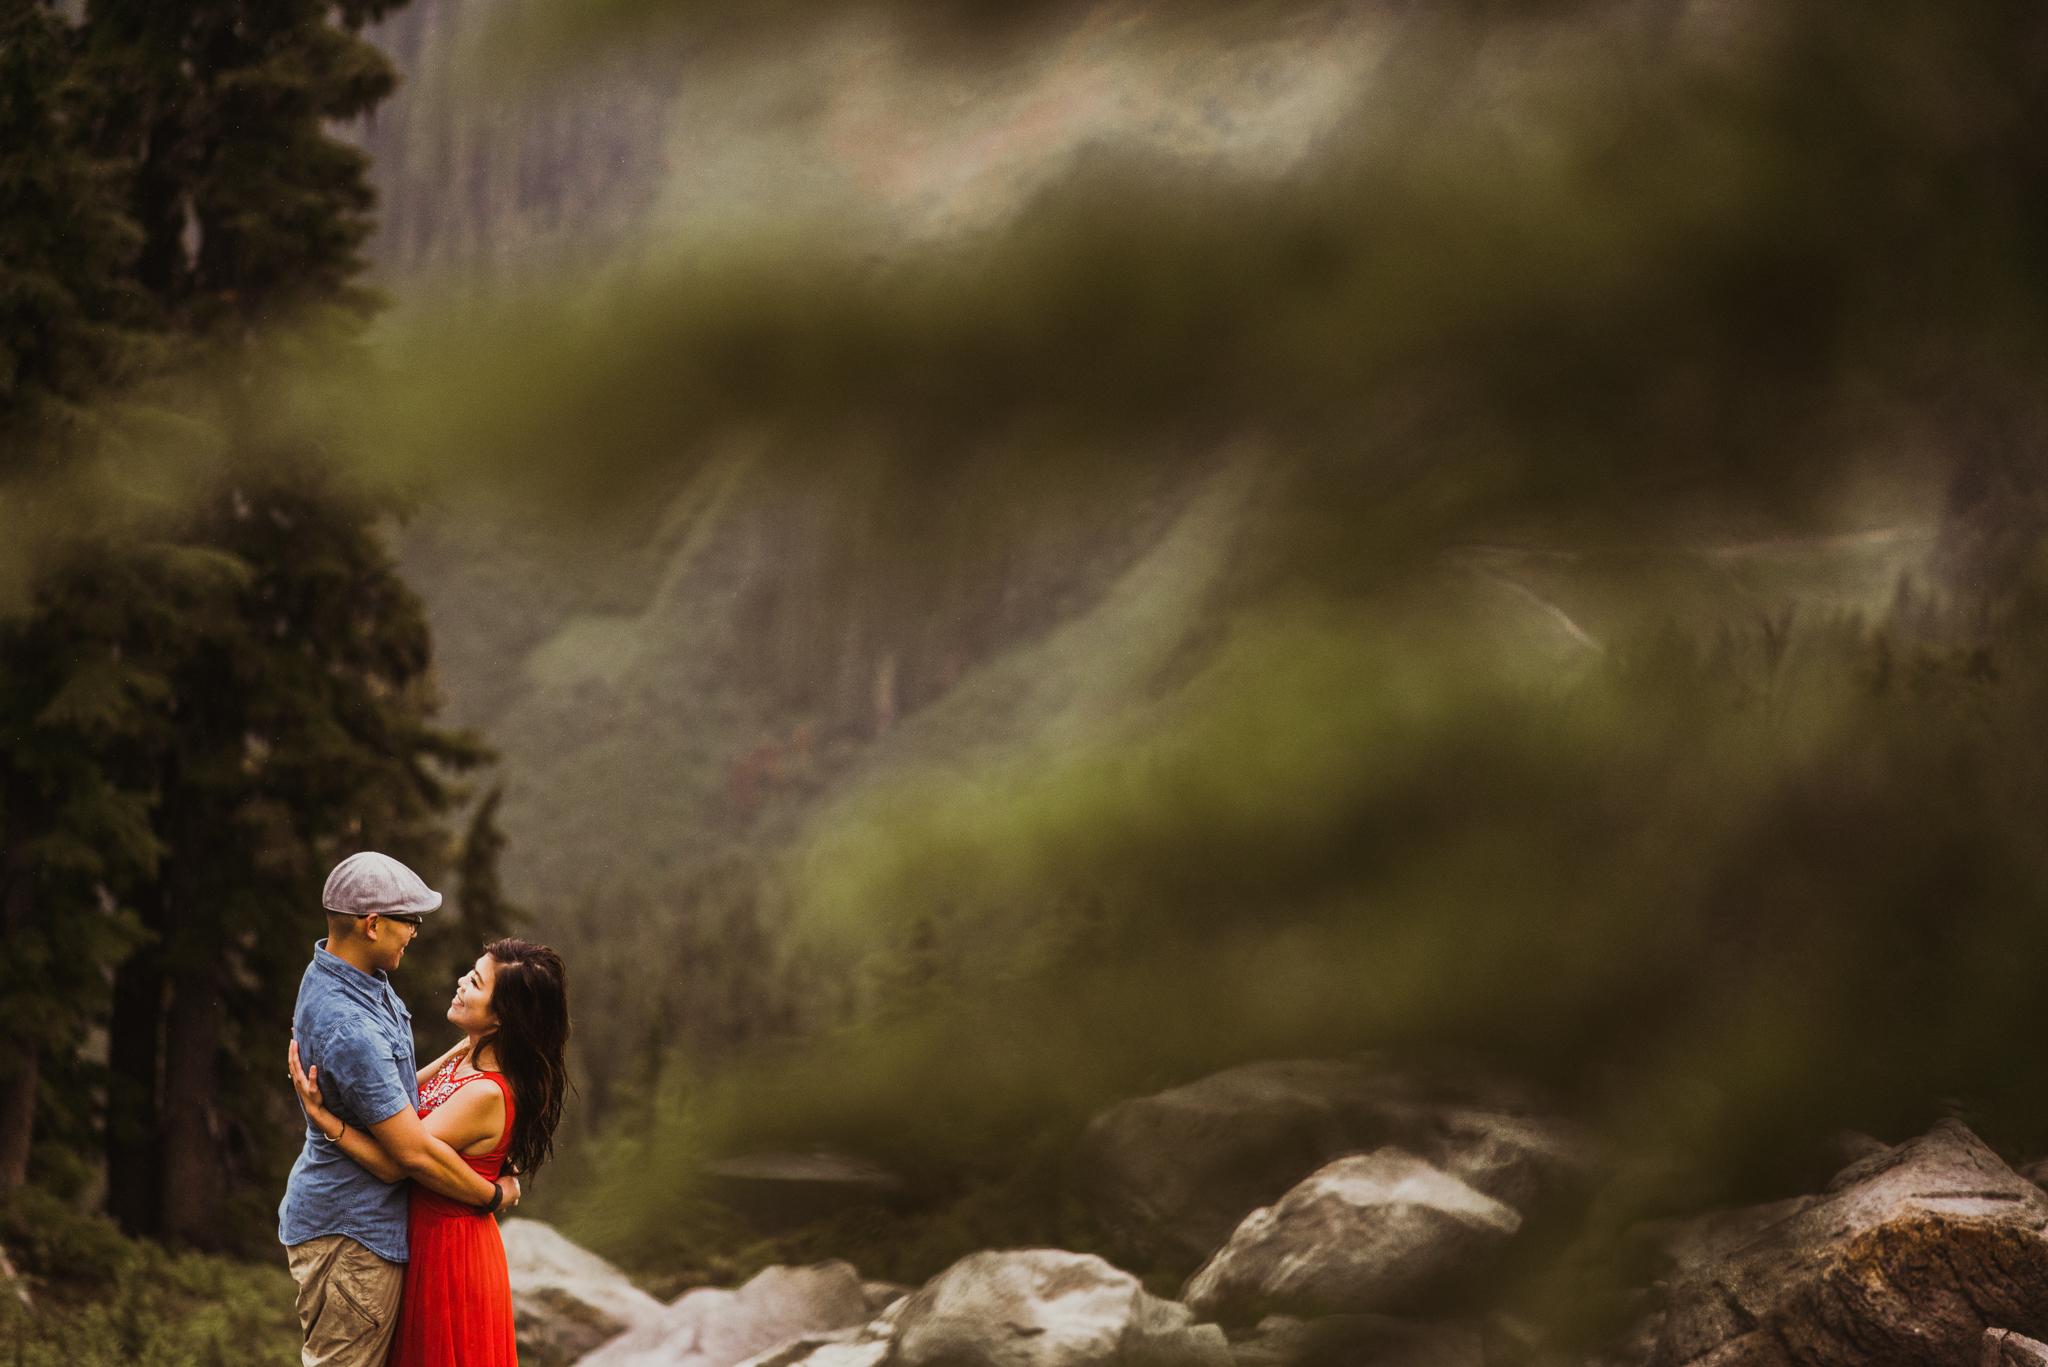 ©Isaiah-&-Taylor-Photography---Hidden-Lake-Cascade-Mountains-Engagement,-Washington-075.jpg